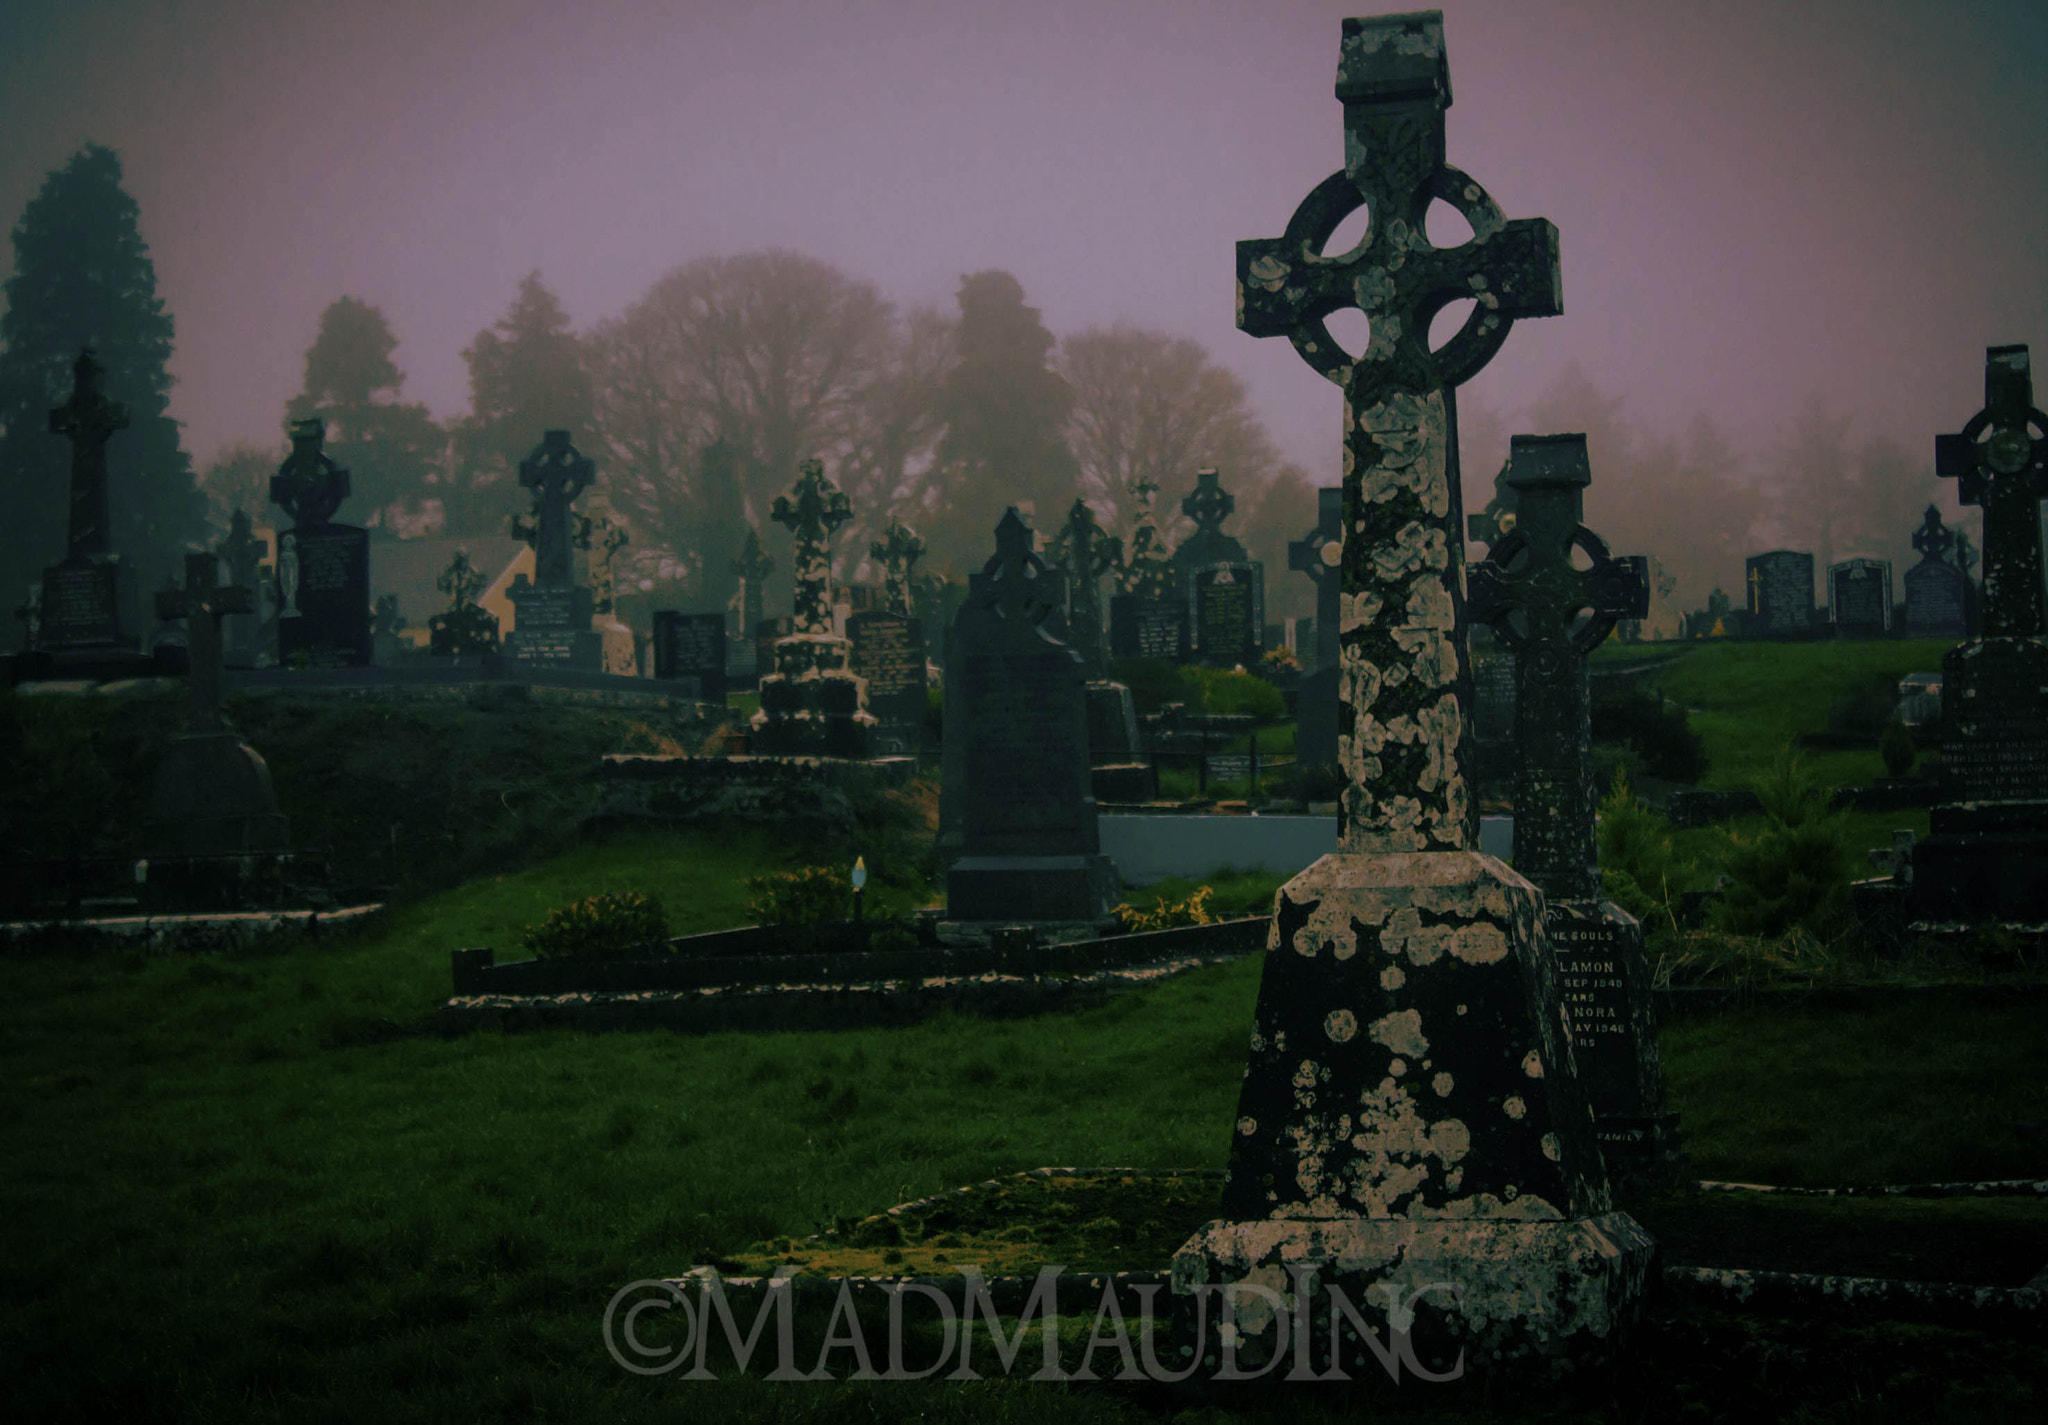 Photograph Eerie Graveyard by Martin Delaney on 500px